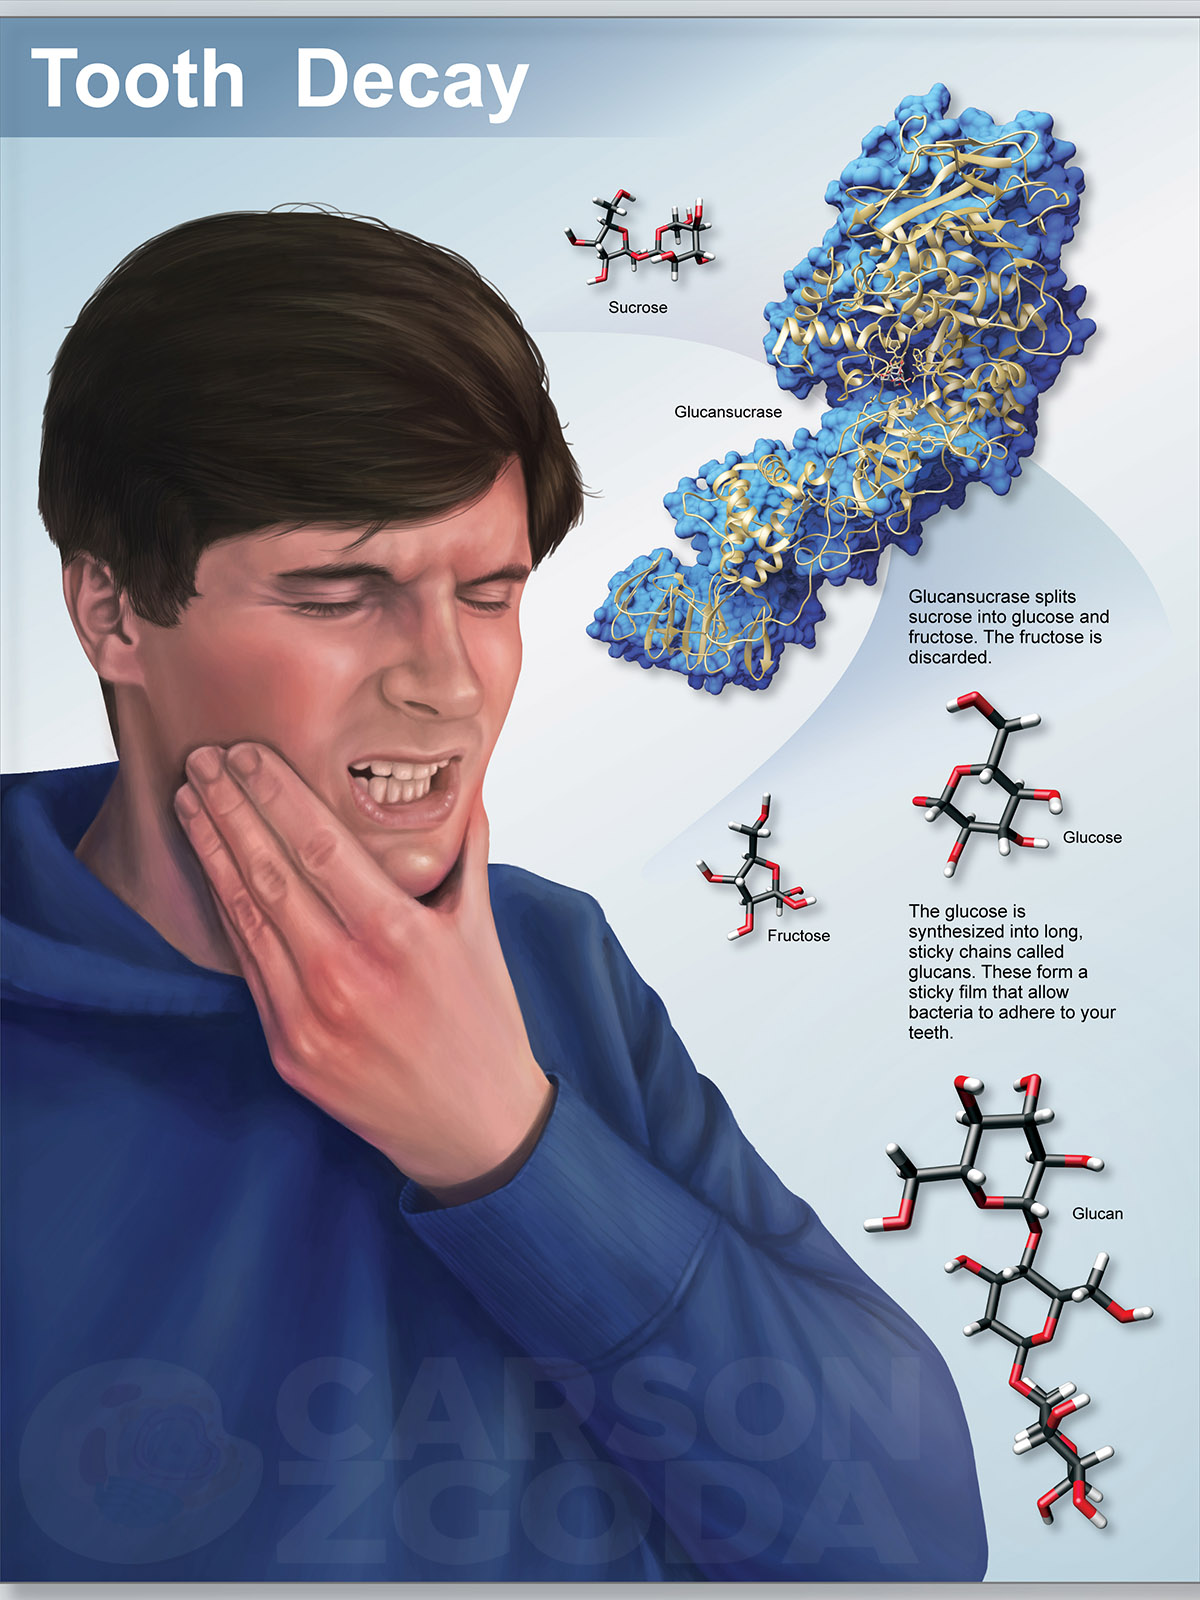 An illustration of a man in agonizing pain from tooth decay.